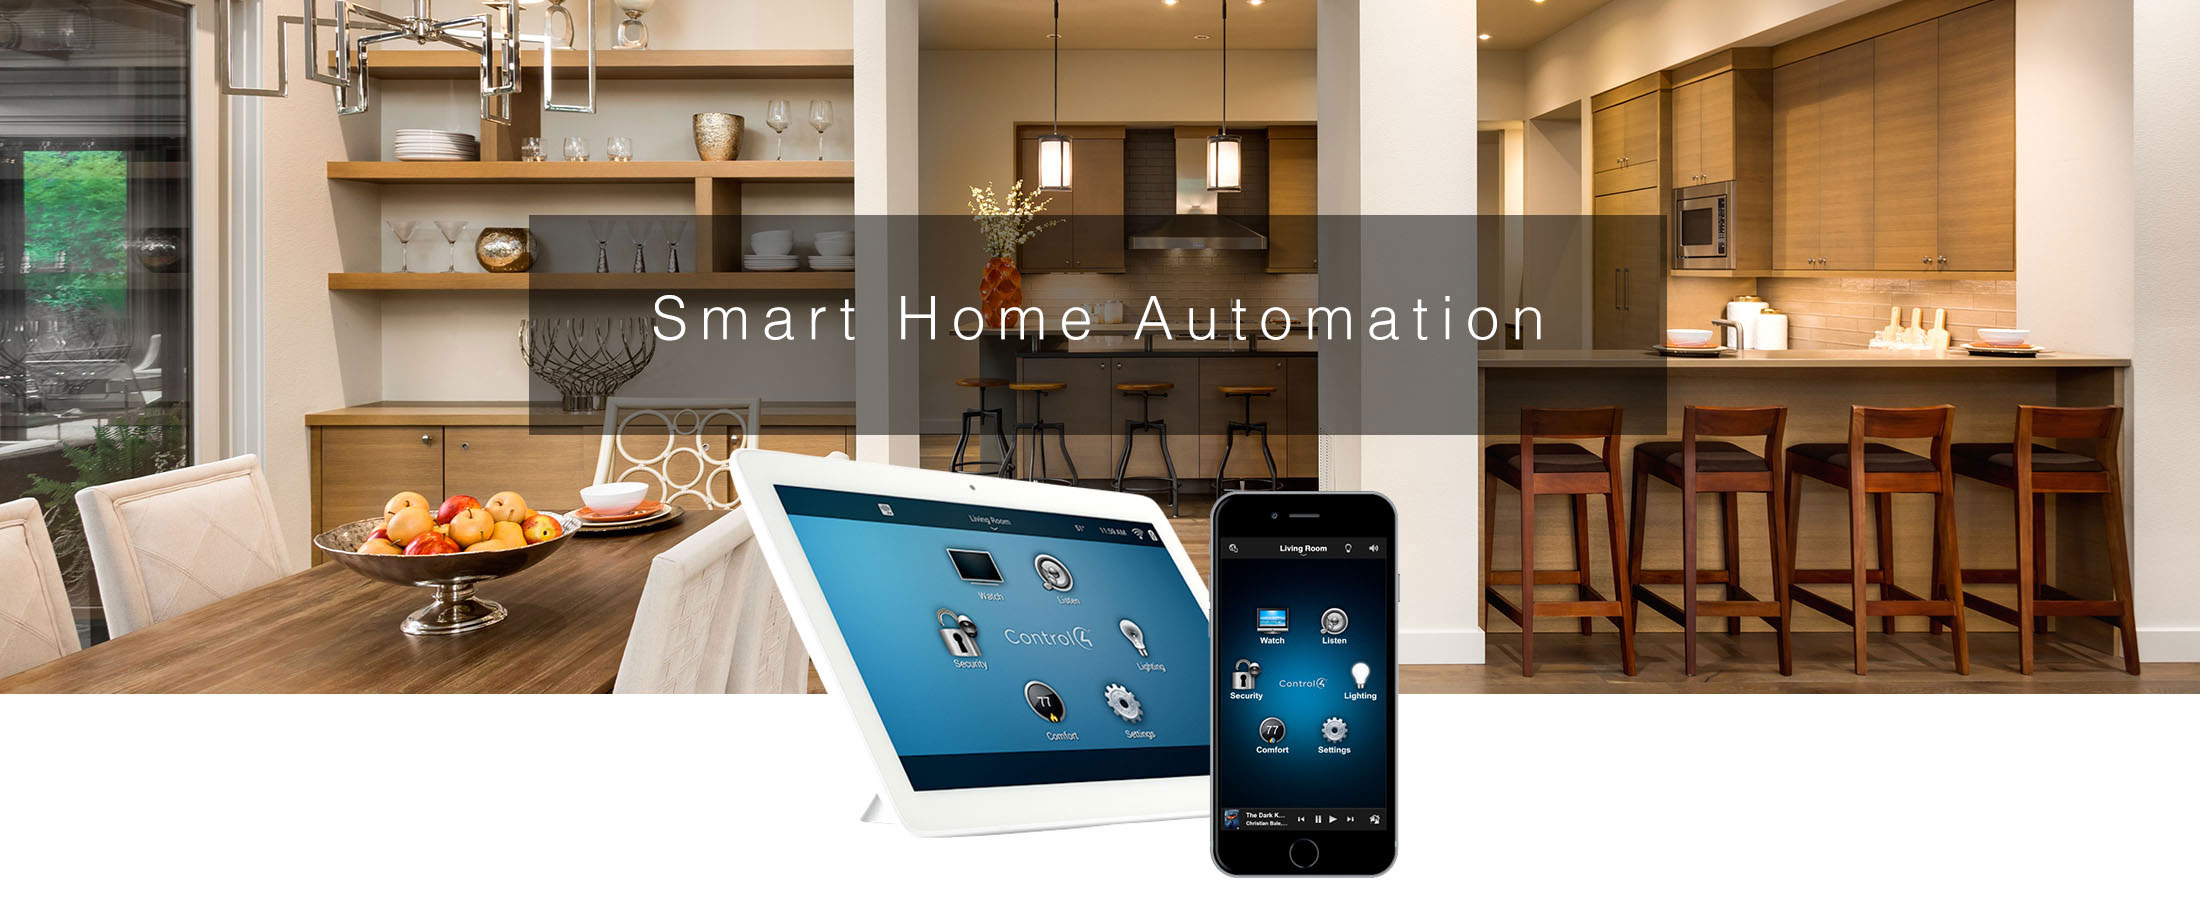 Smart Home Automation - Control4